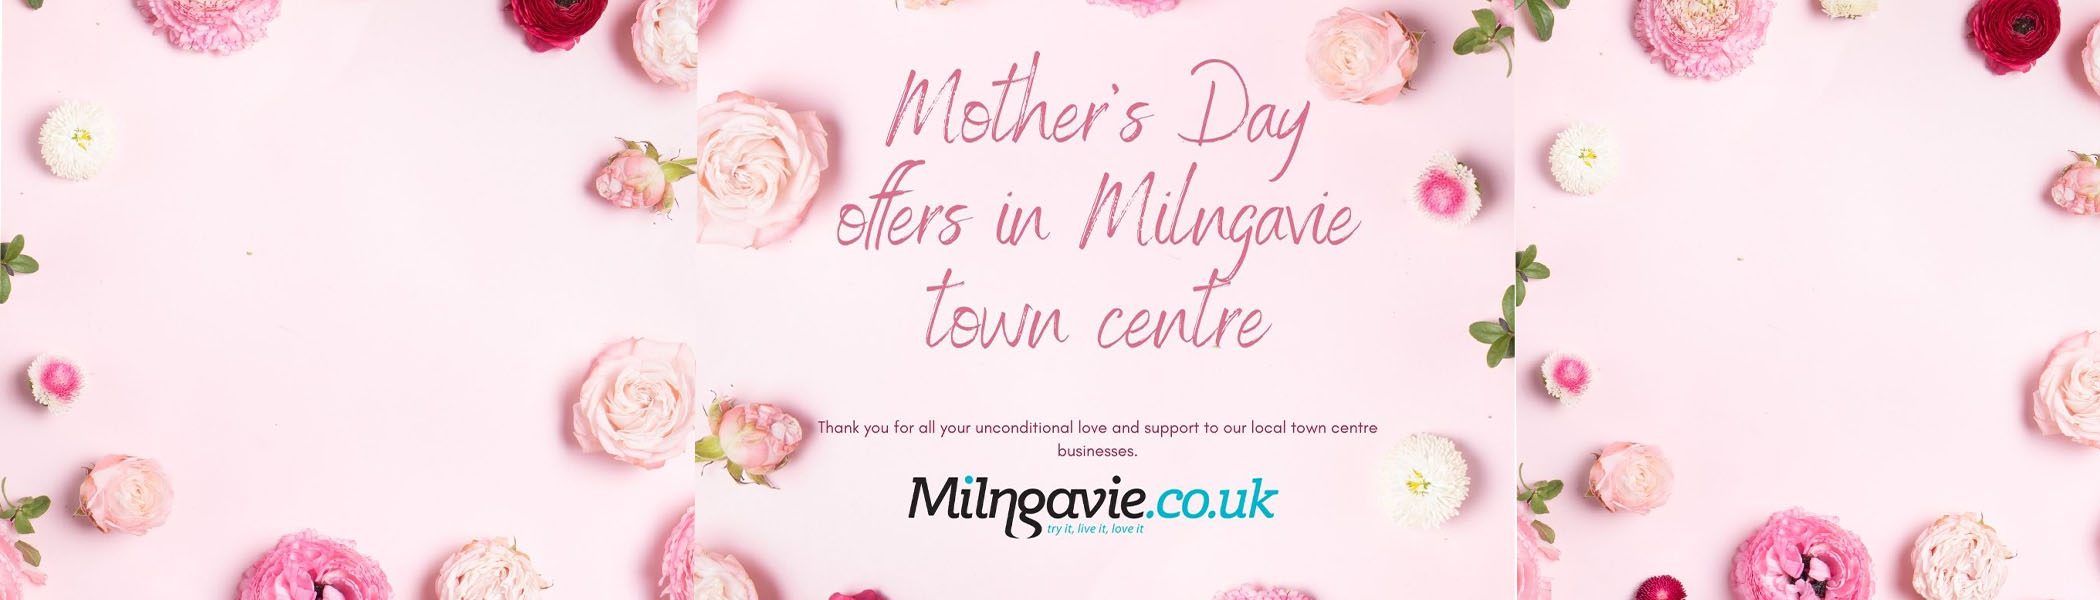 Mother's Day Milngavie town centre 2021